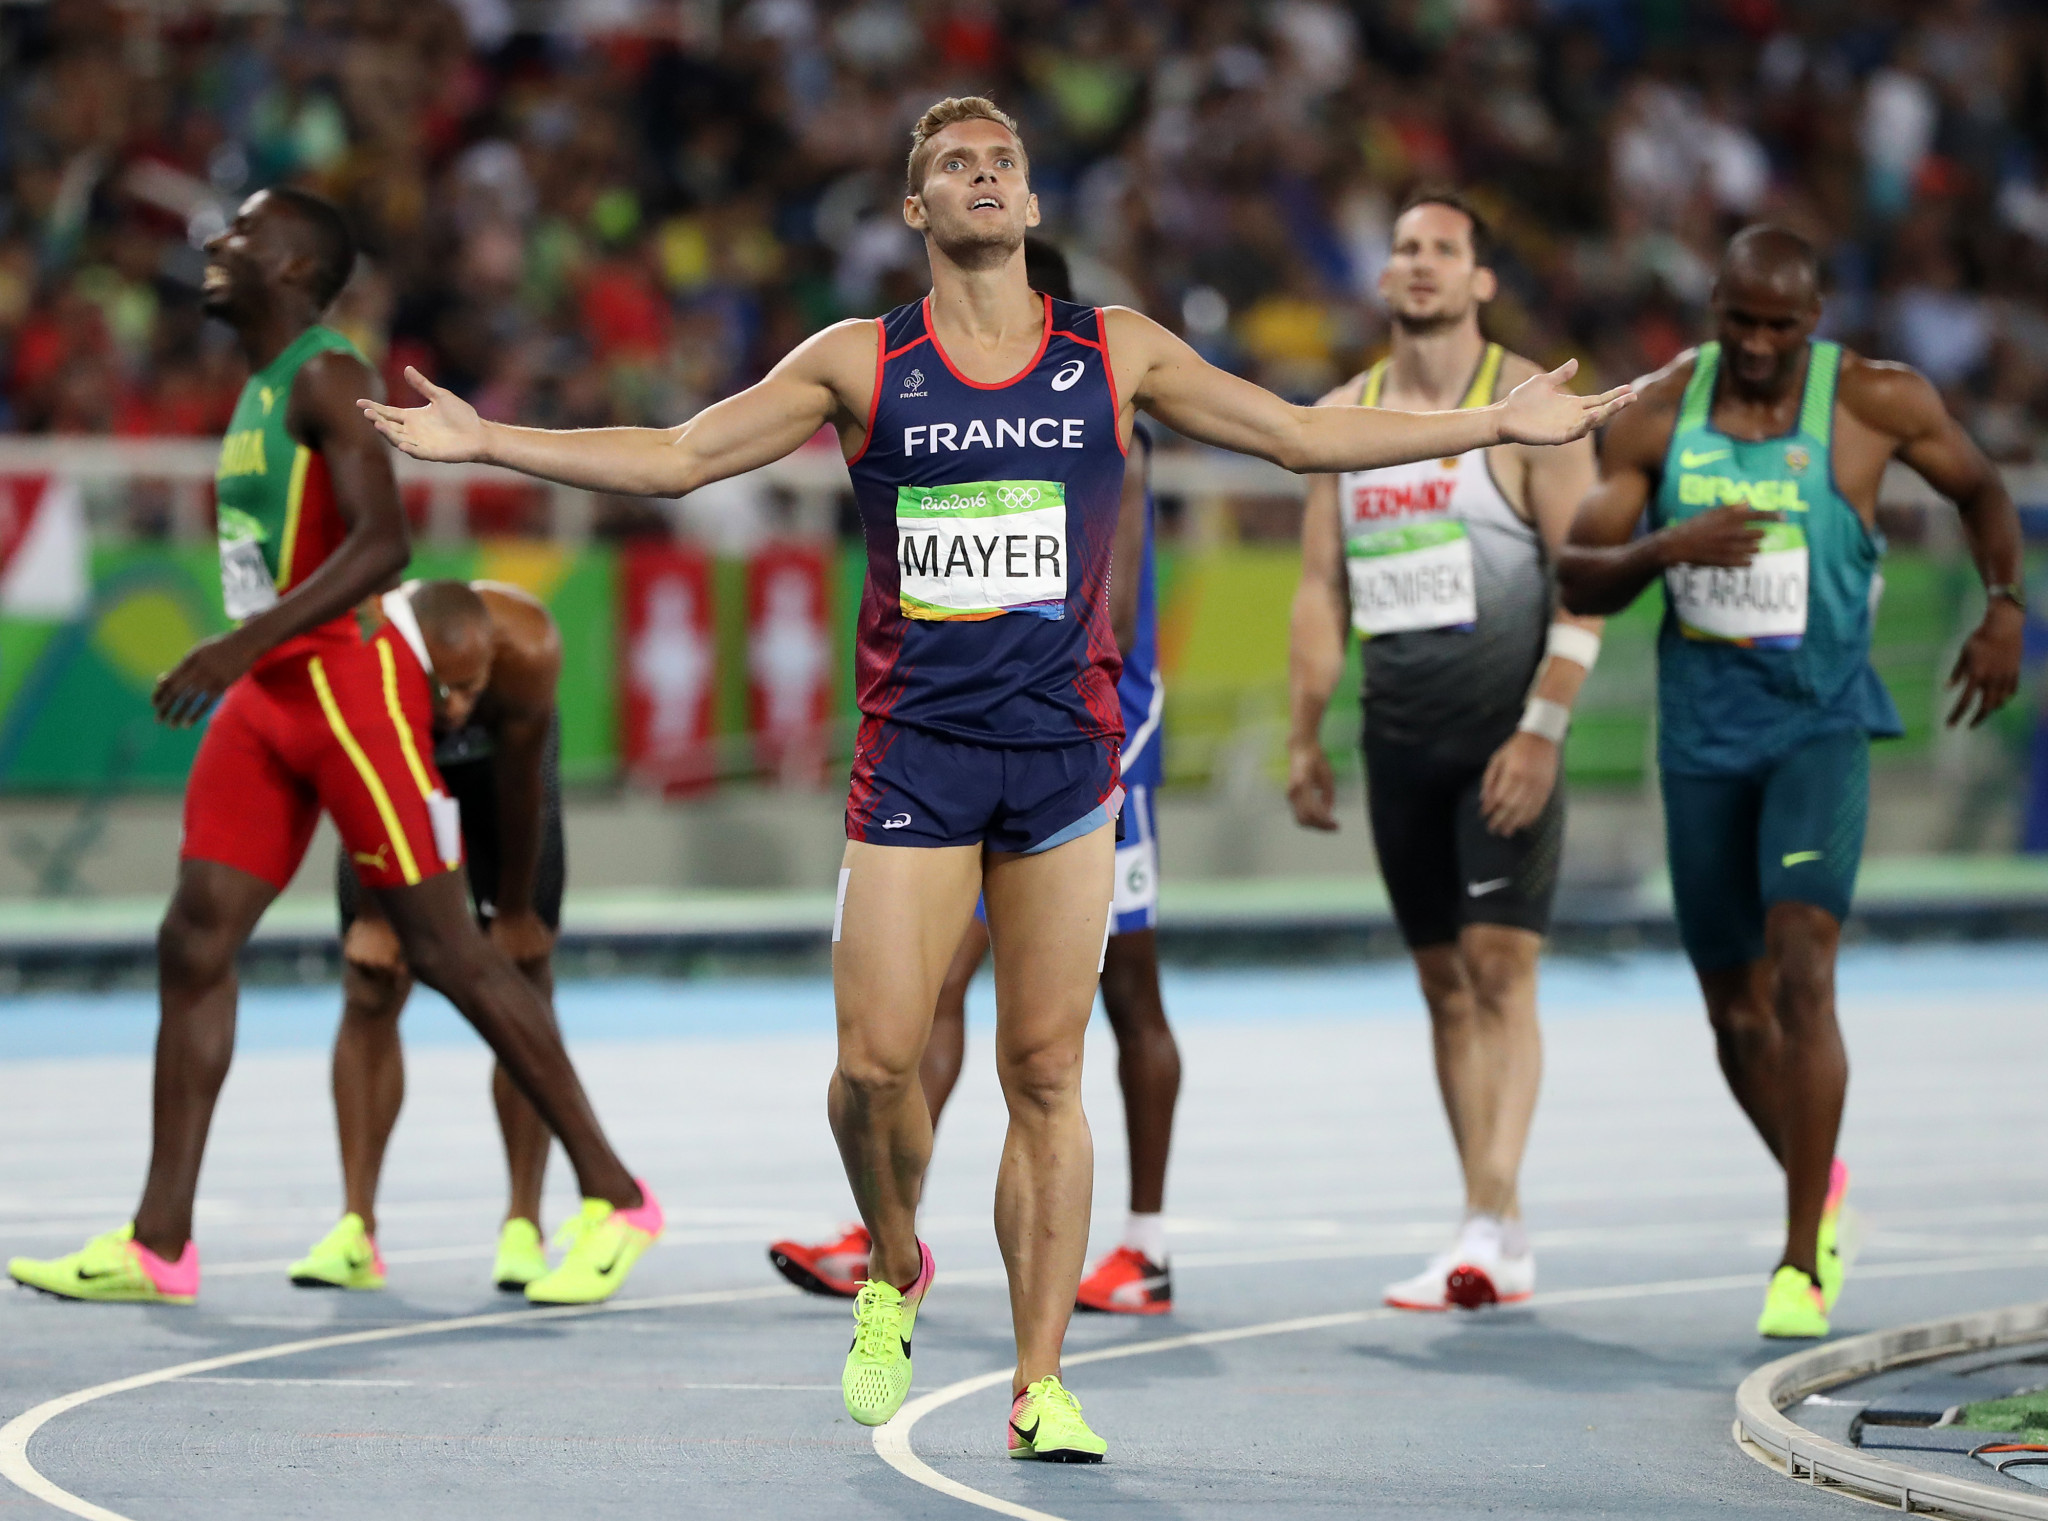 It has been suggested that the decathlon's 1,500m could begin with a staggered start ©Getty Images